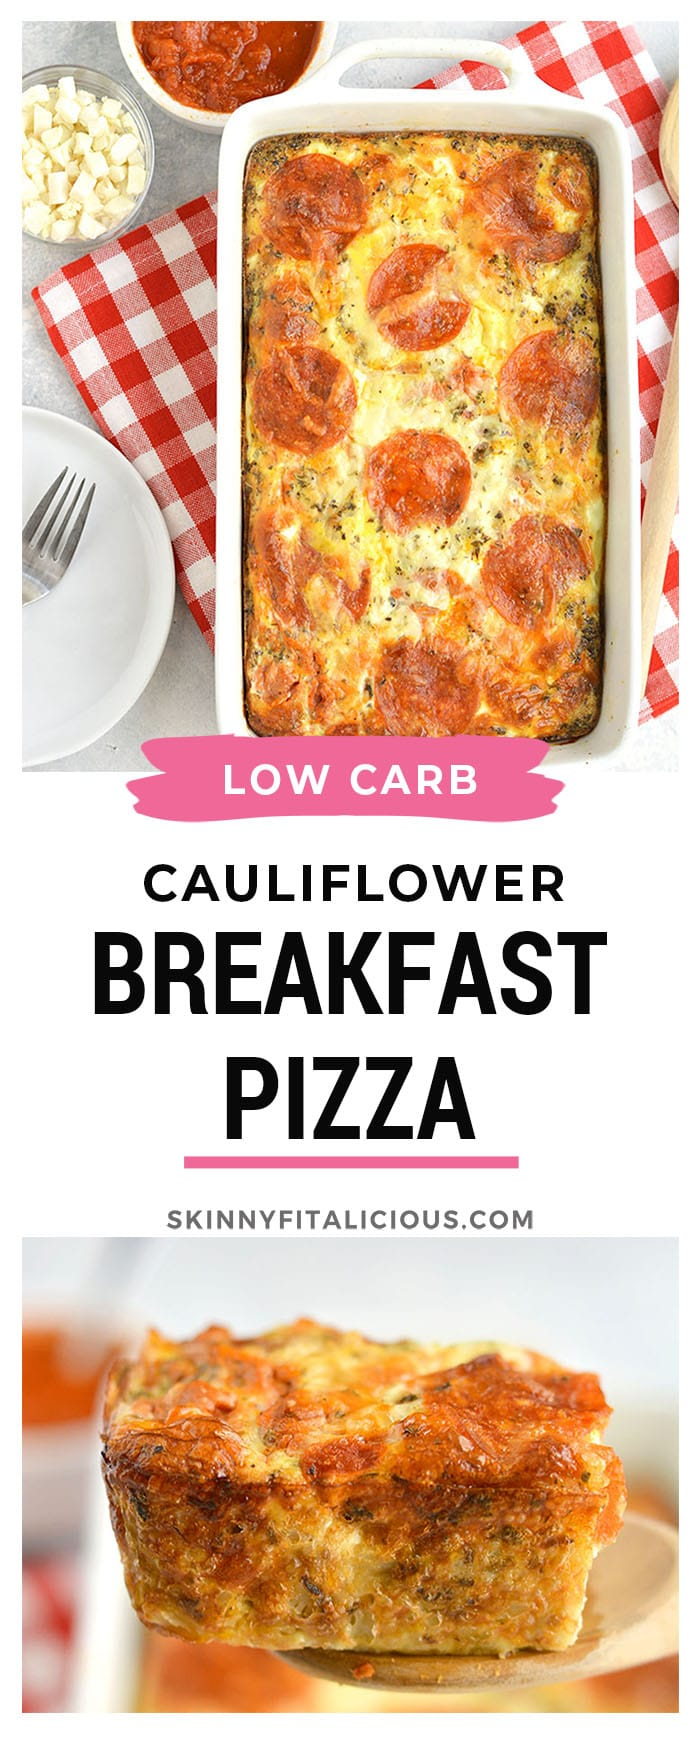 A Breakfast Cauliflower Pizza recipe you can eat anytime of day! Healthy, veggie packed, low carb pizza made with a simple cauliflower crust & topped with your favorite toppings. The more the merrier! This breakfast pizza is quick to make and nutritious! Gluten Free + Low Calorie